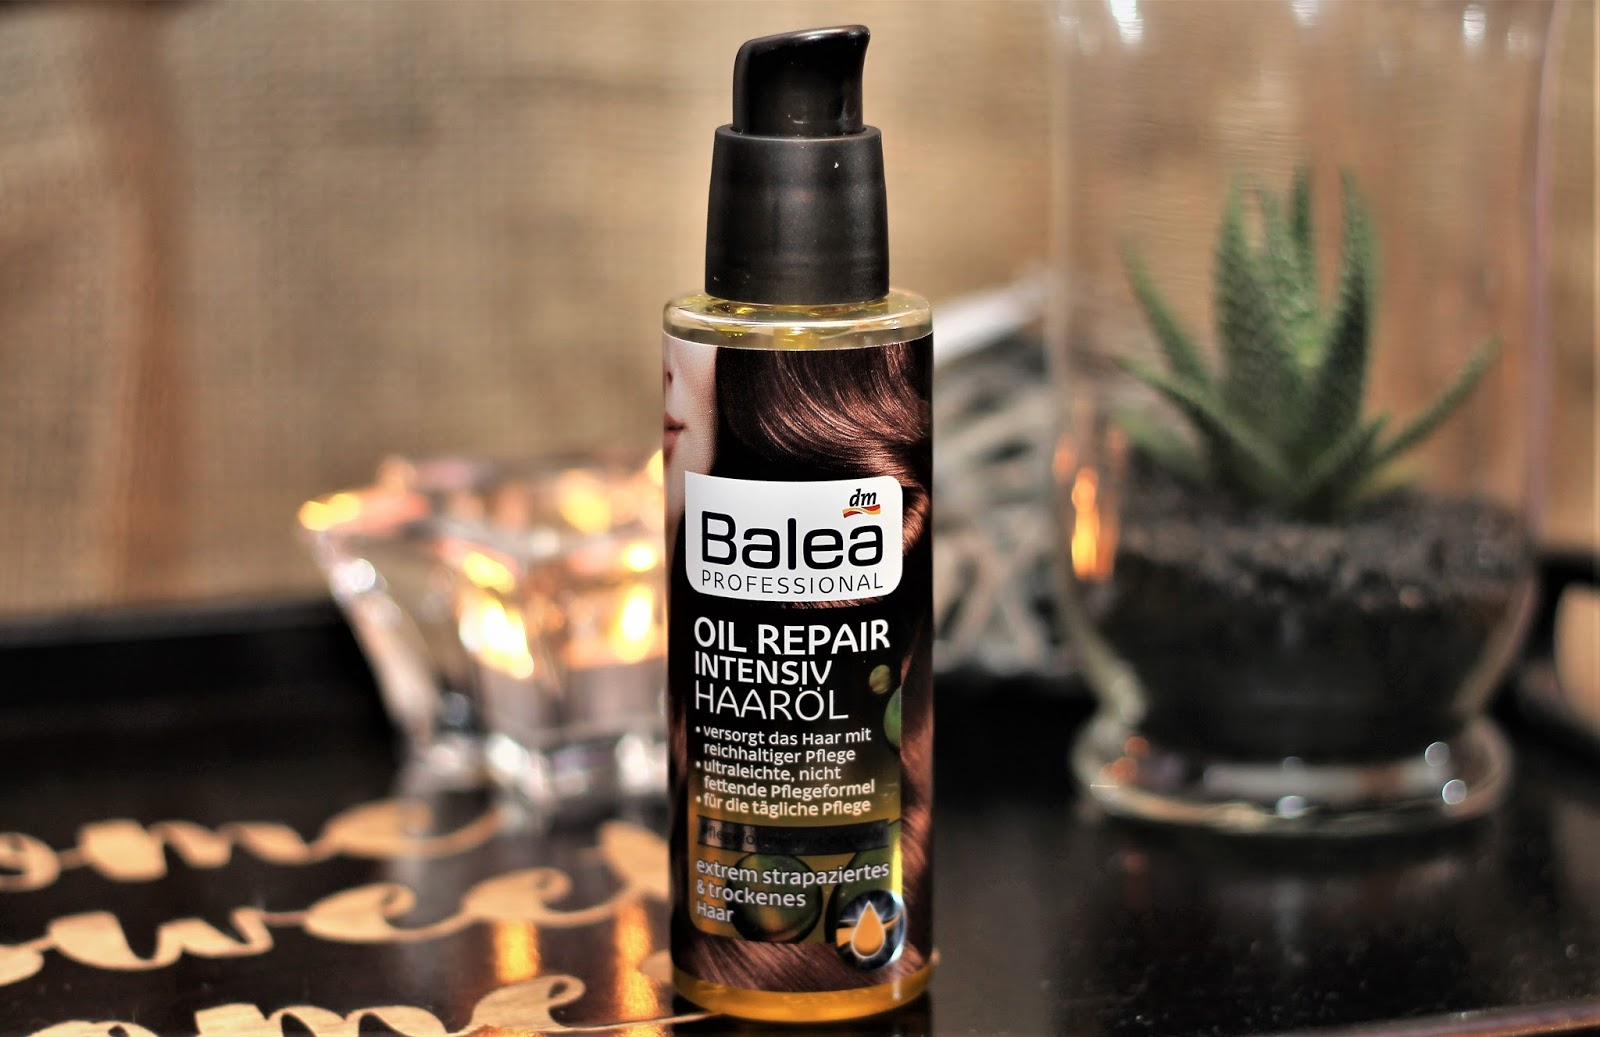 Balea, Professional, Oil Repair Haaröl